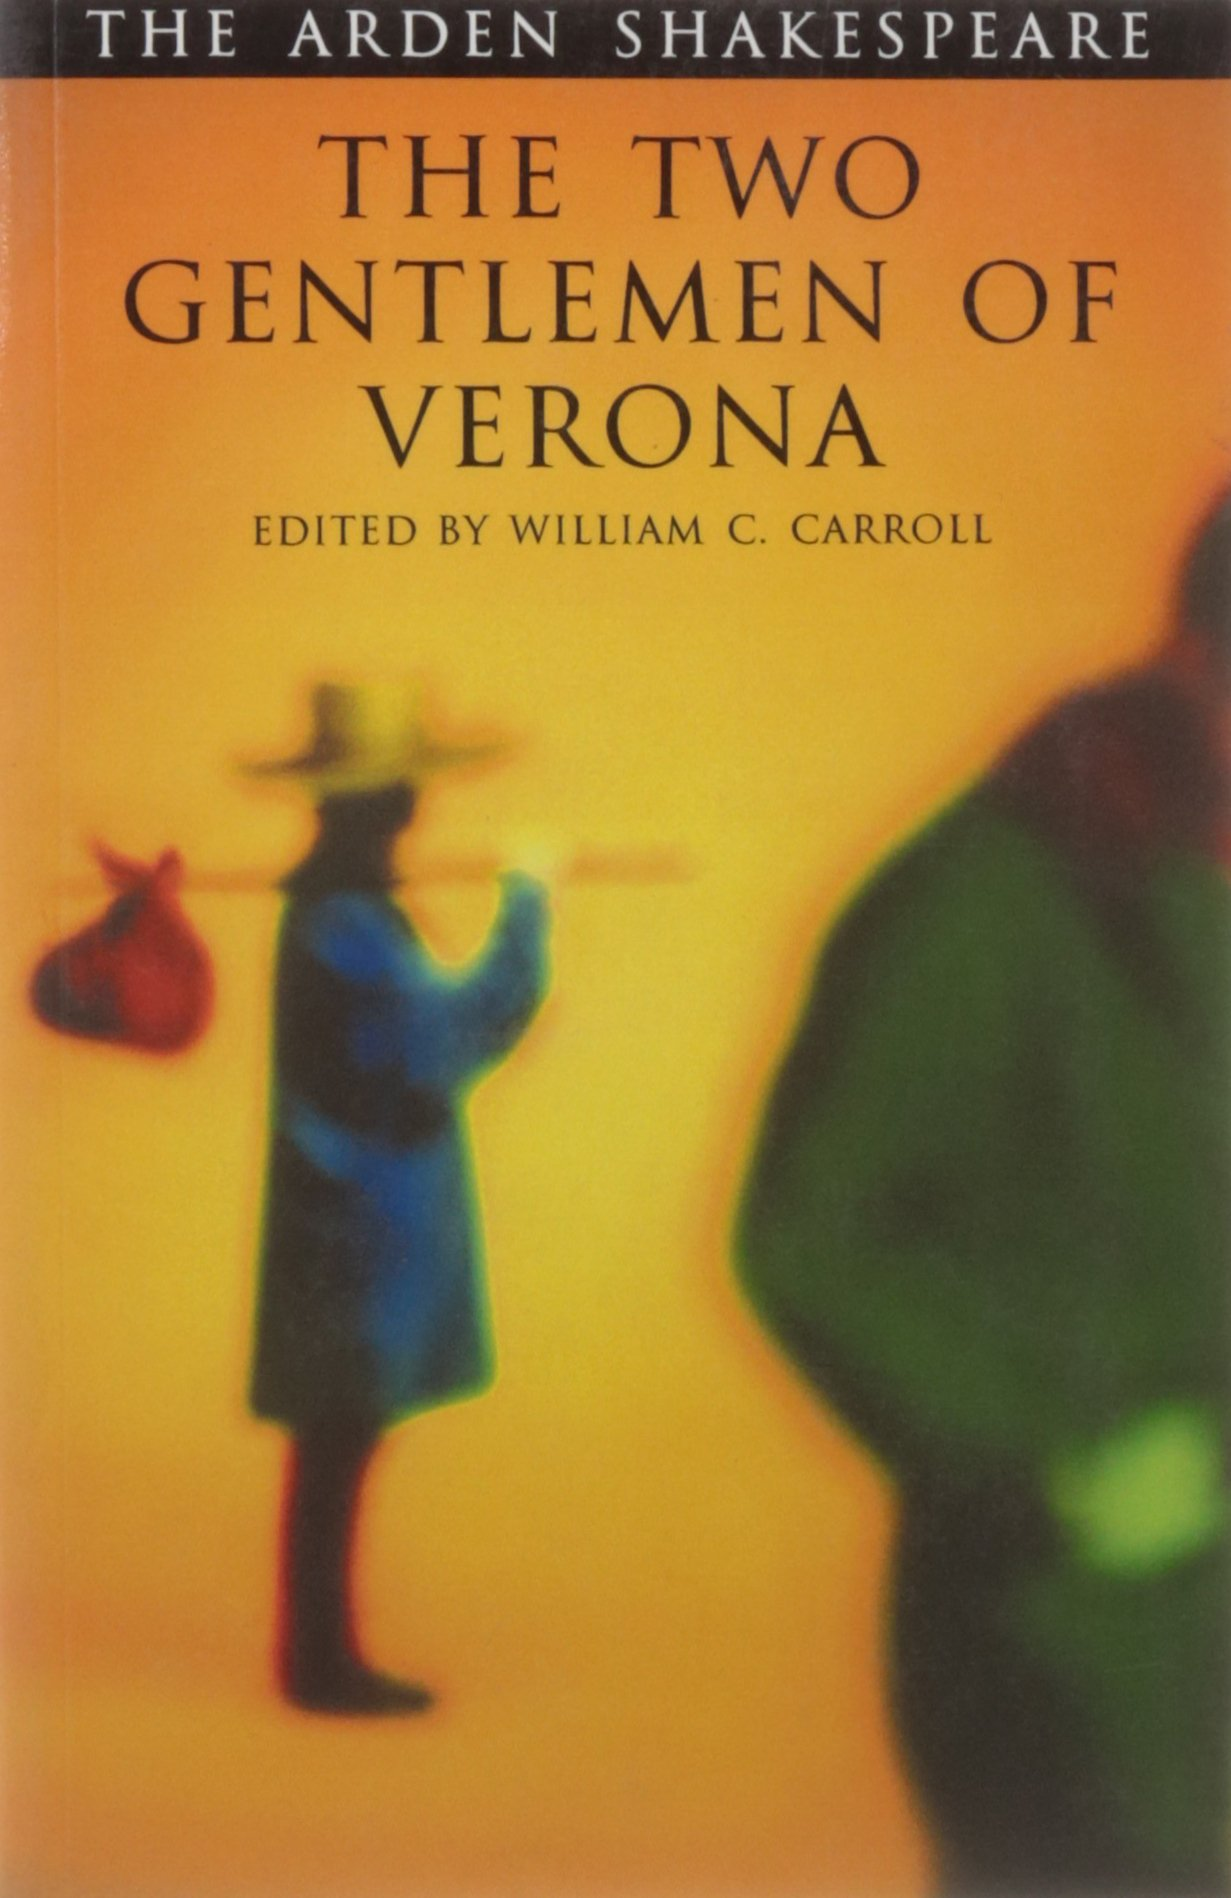 amazon com the two gentlemen of verona arden shakespeare third amazon com the two gentlemen of verona arden shakespeare third series 9781903436950 william shakespeare william carroll books